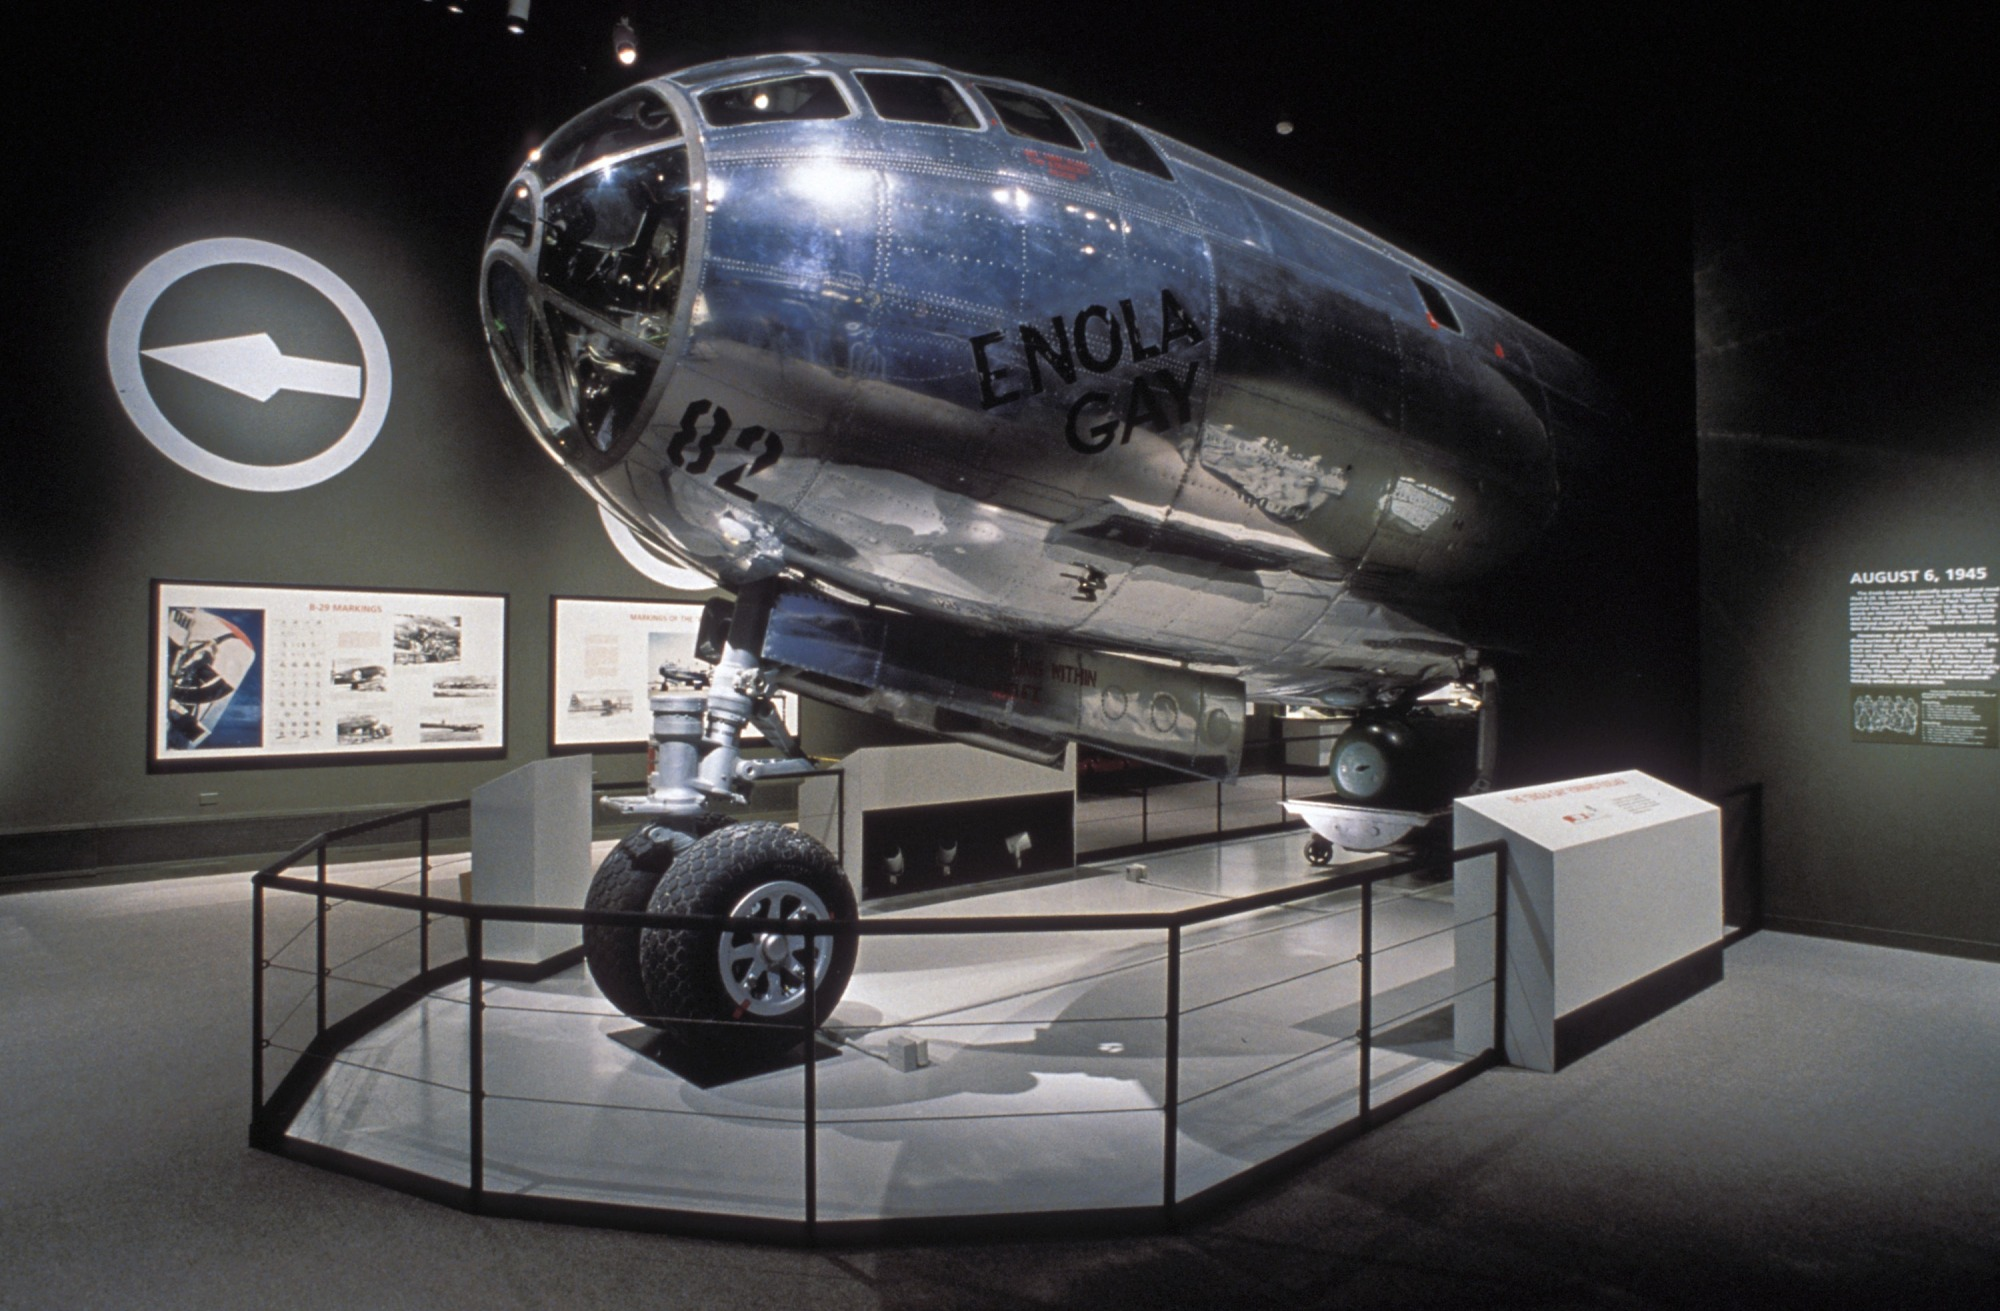 Enola Gay on Display, c. 1995, Smithsonian Archives - History Div, 95-4624.